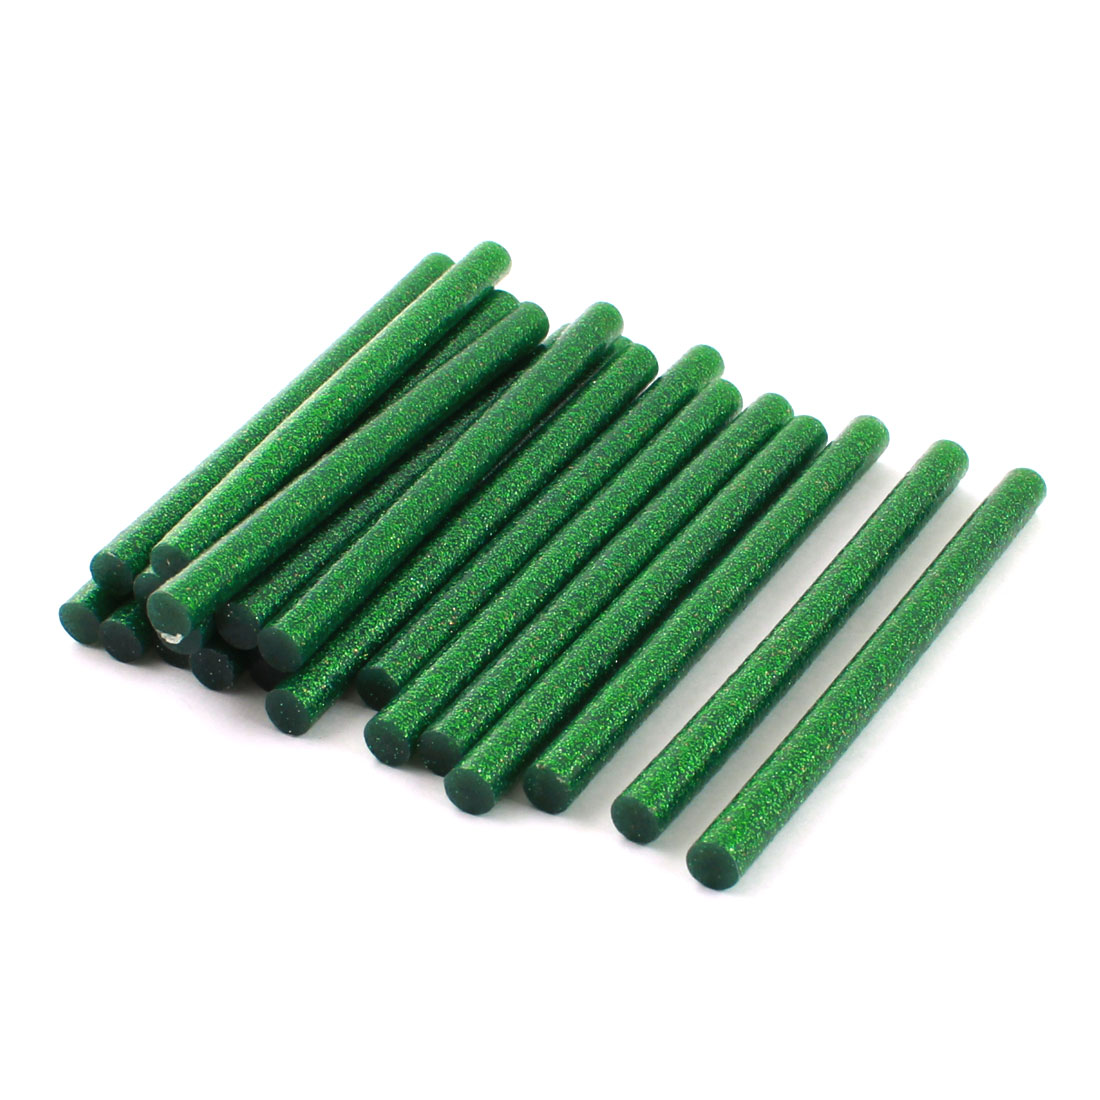 20 Pcs Dark Green Glitter Electric Tool Hot Melt Gun Glue Adhesive Stick 7mm x 100mm